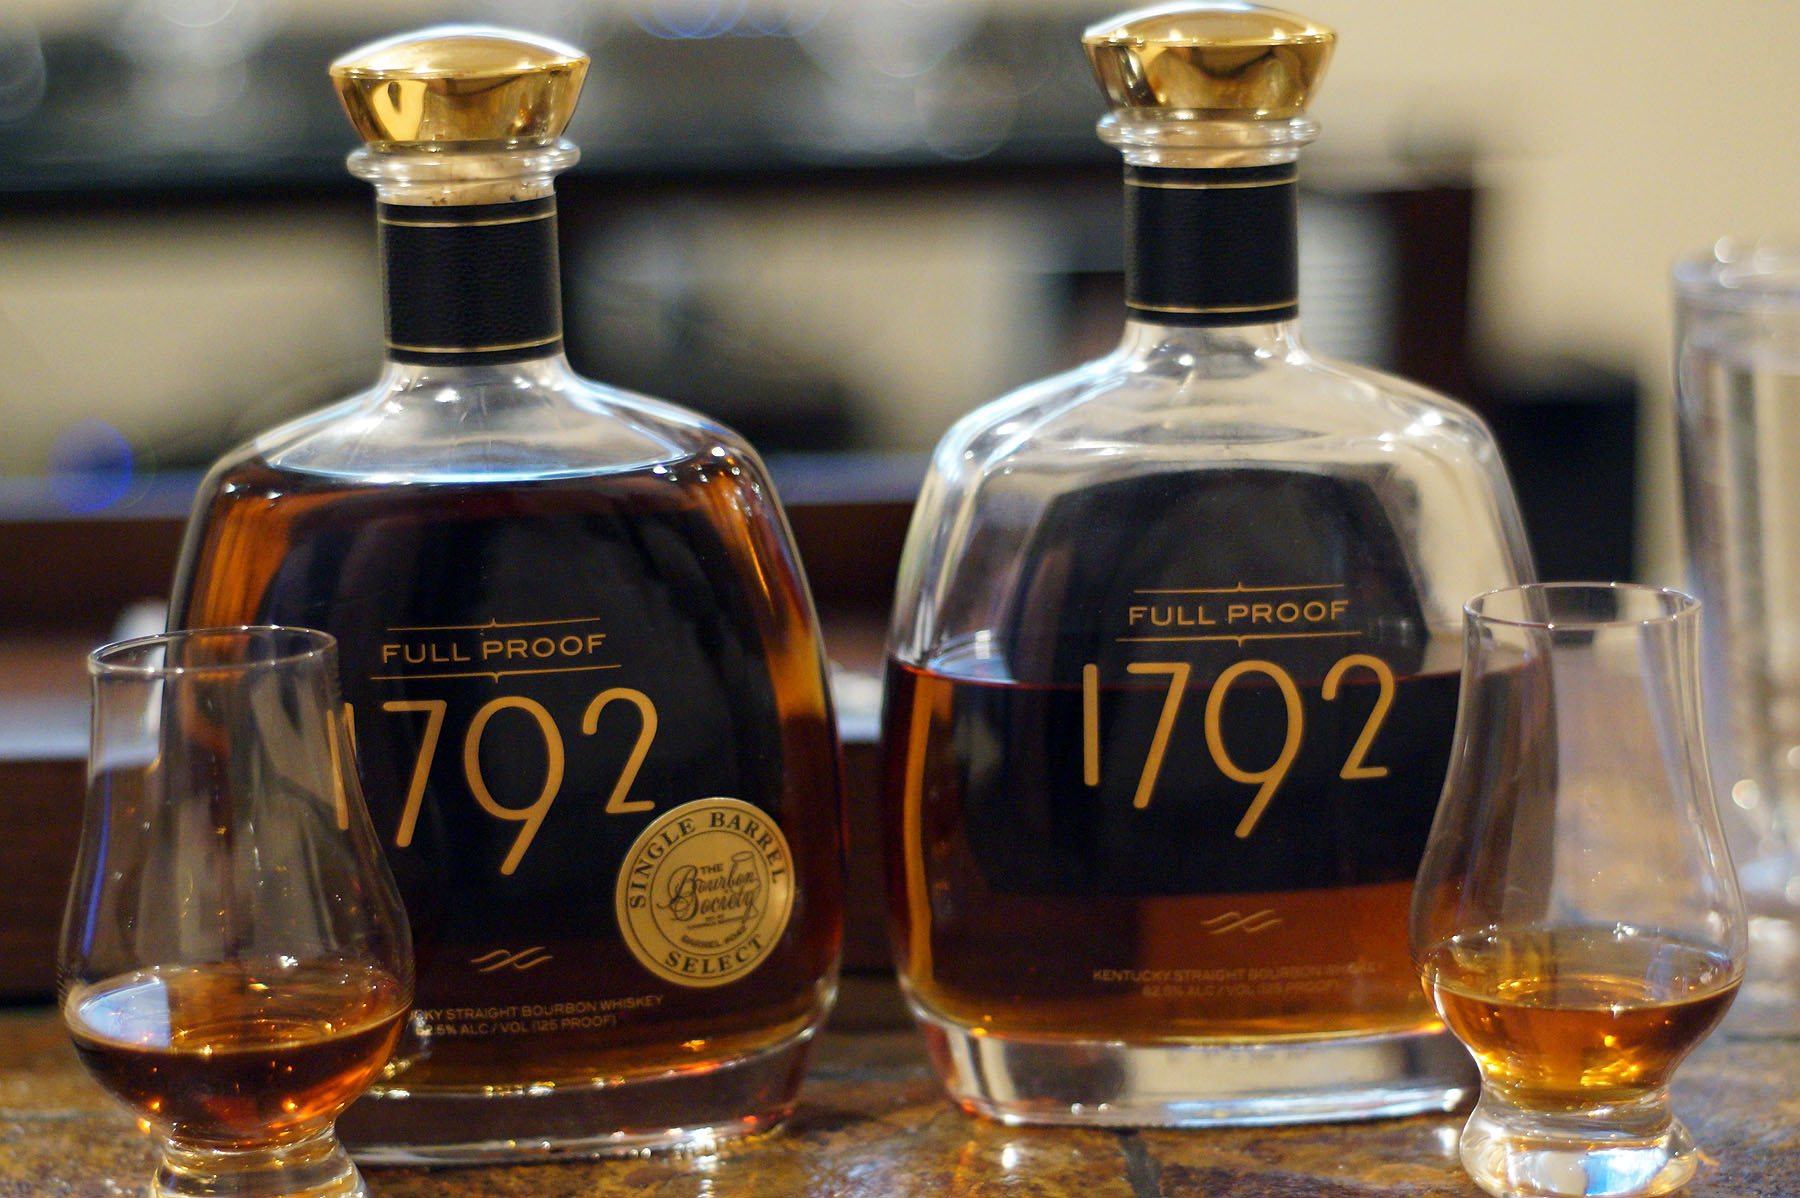 1792 Full Proof Single Barrel Review The Bourbon Society Selection